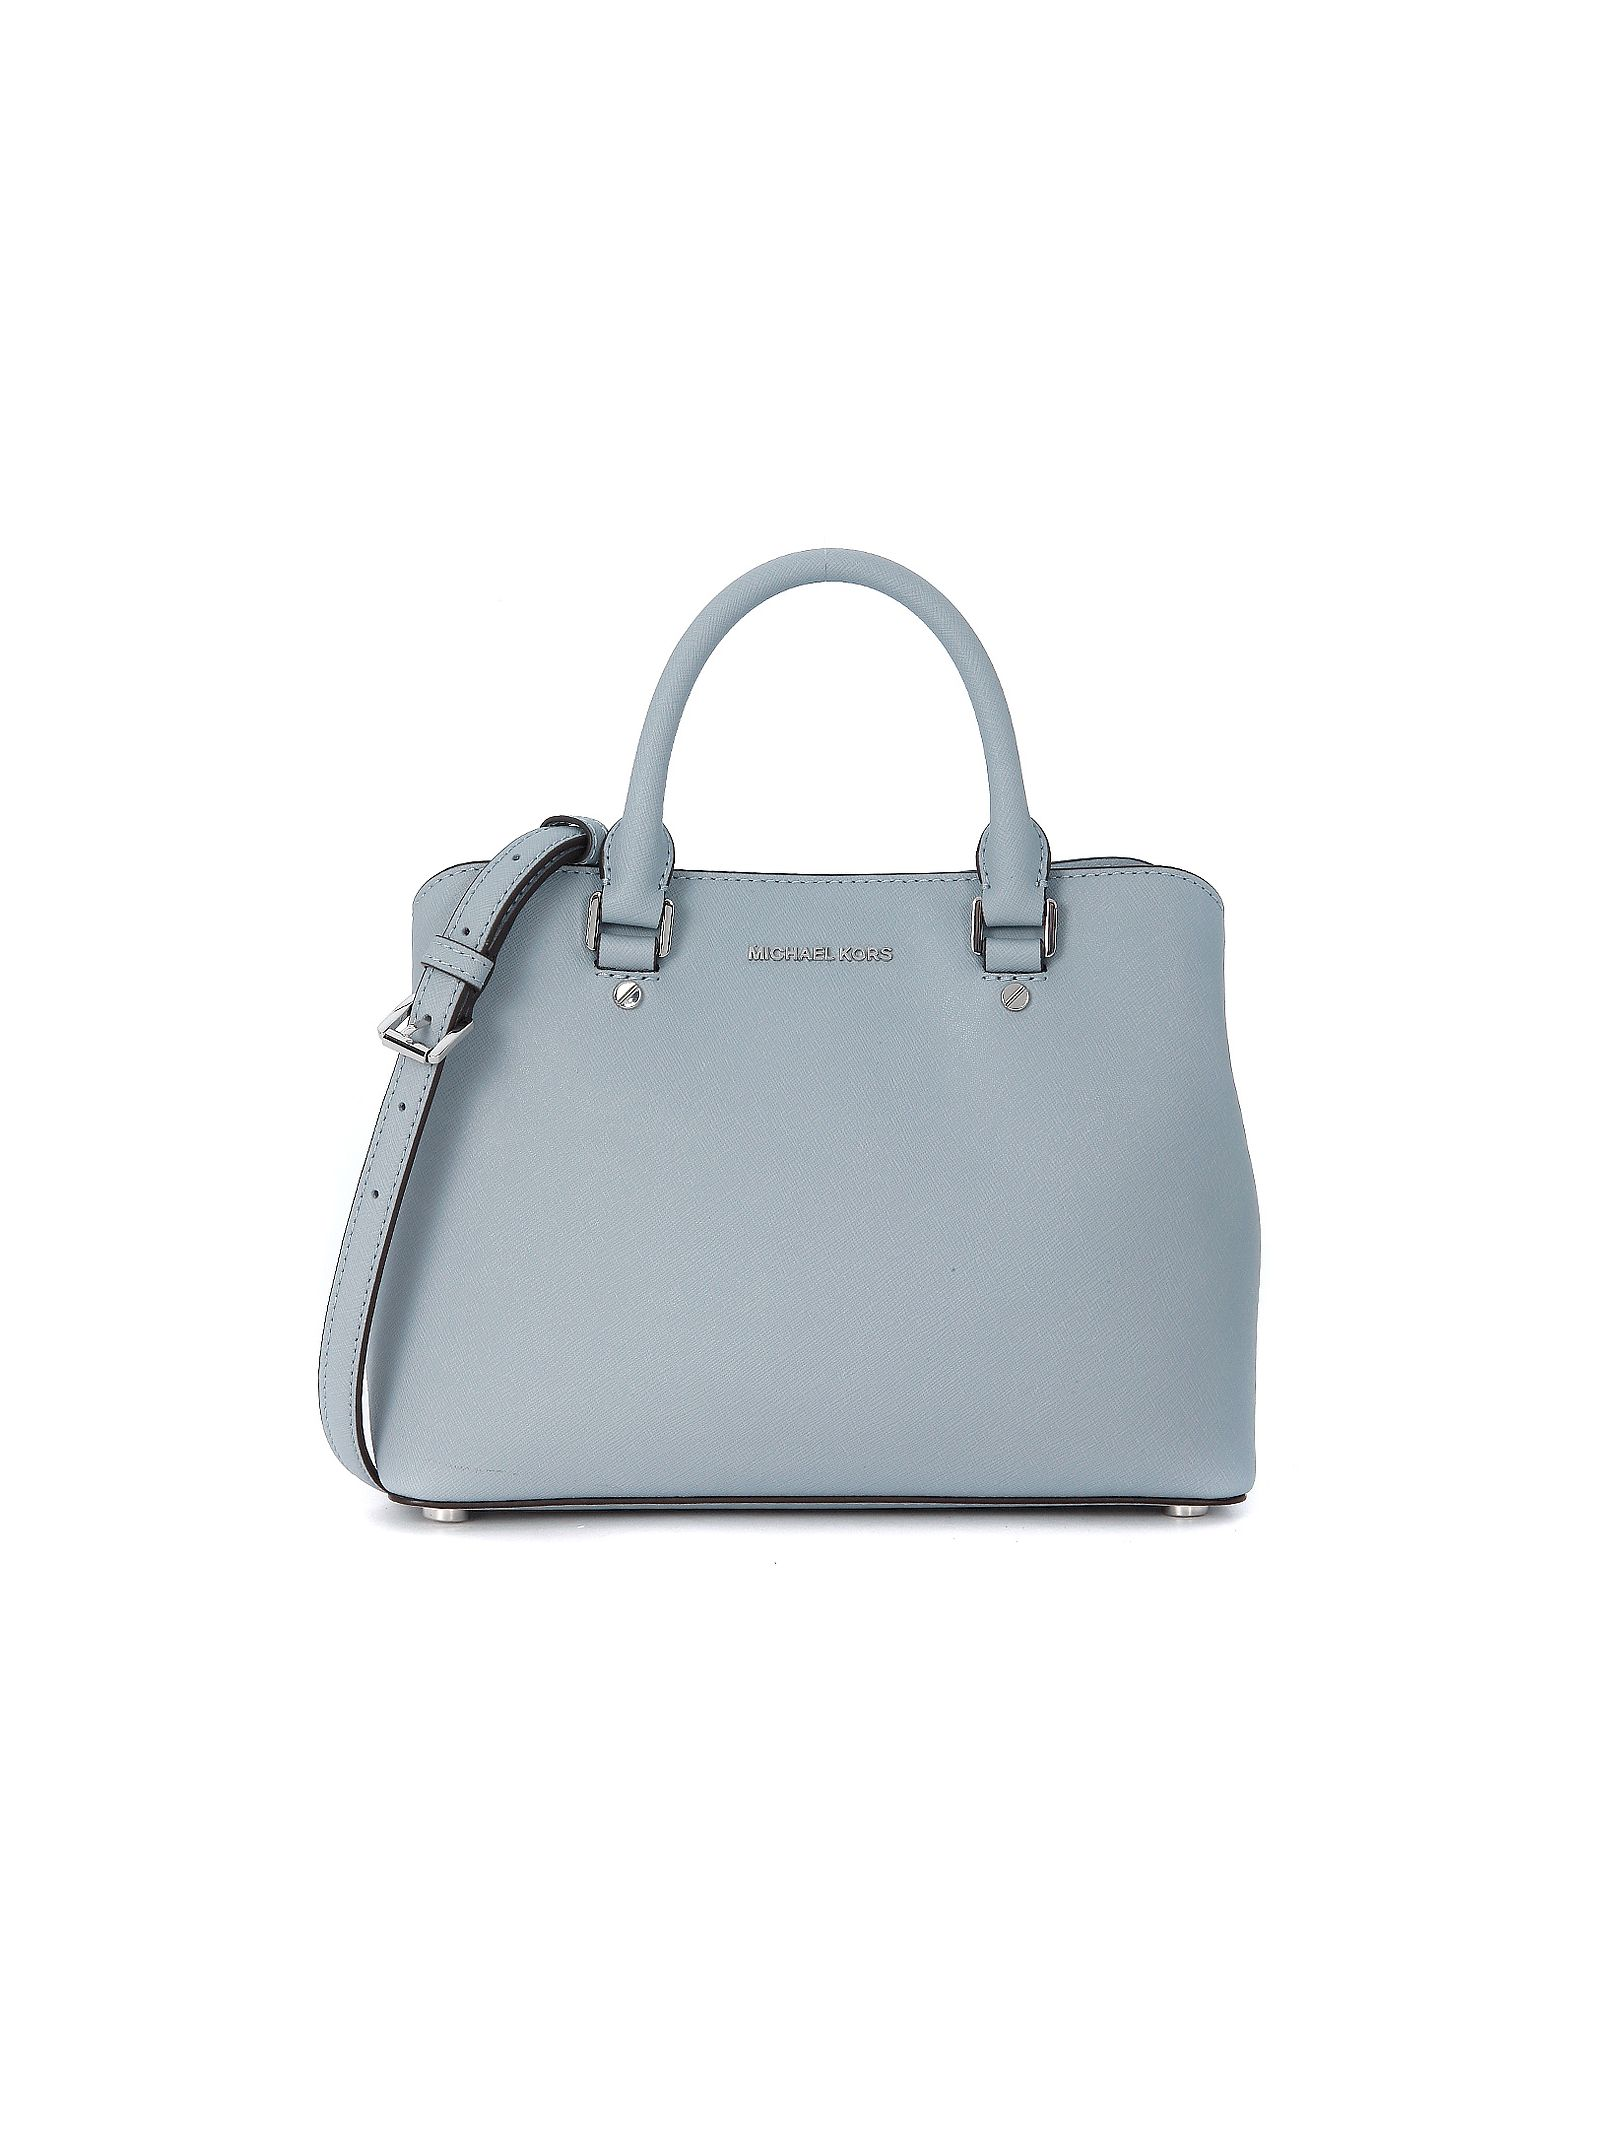 michael kors female  michael kors savannah bag in robinsegg light blue